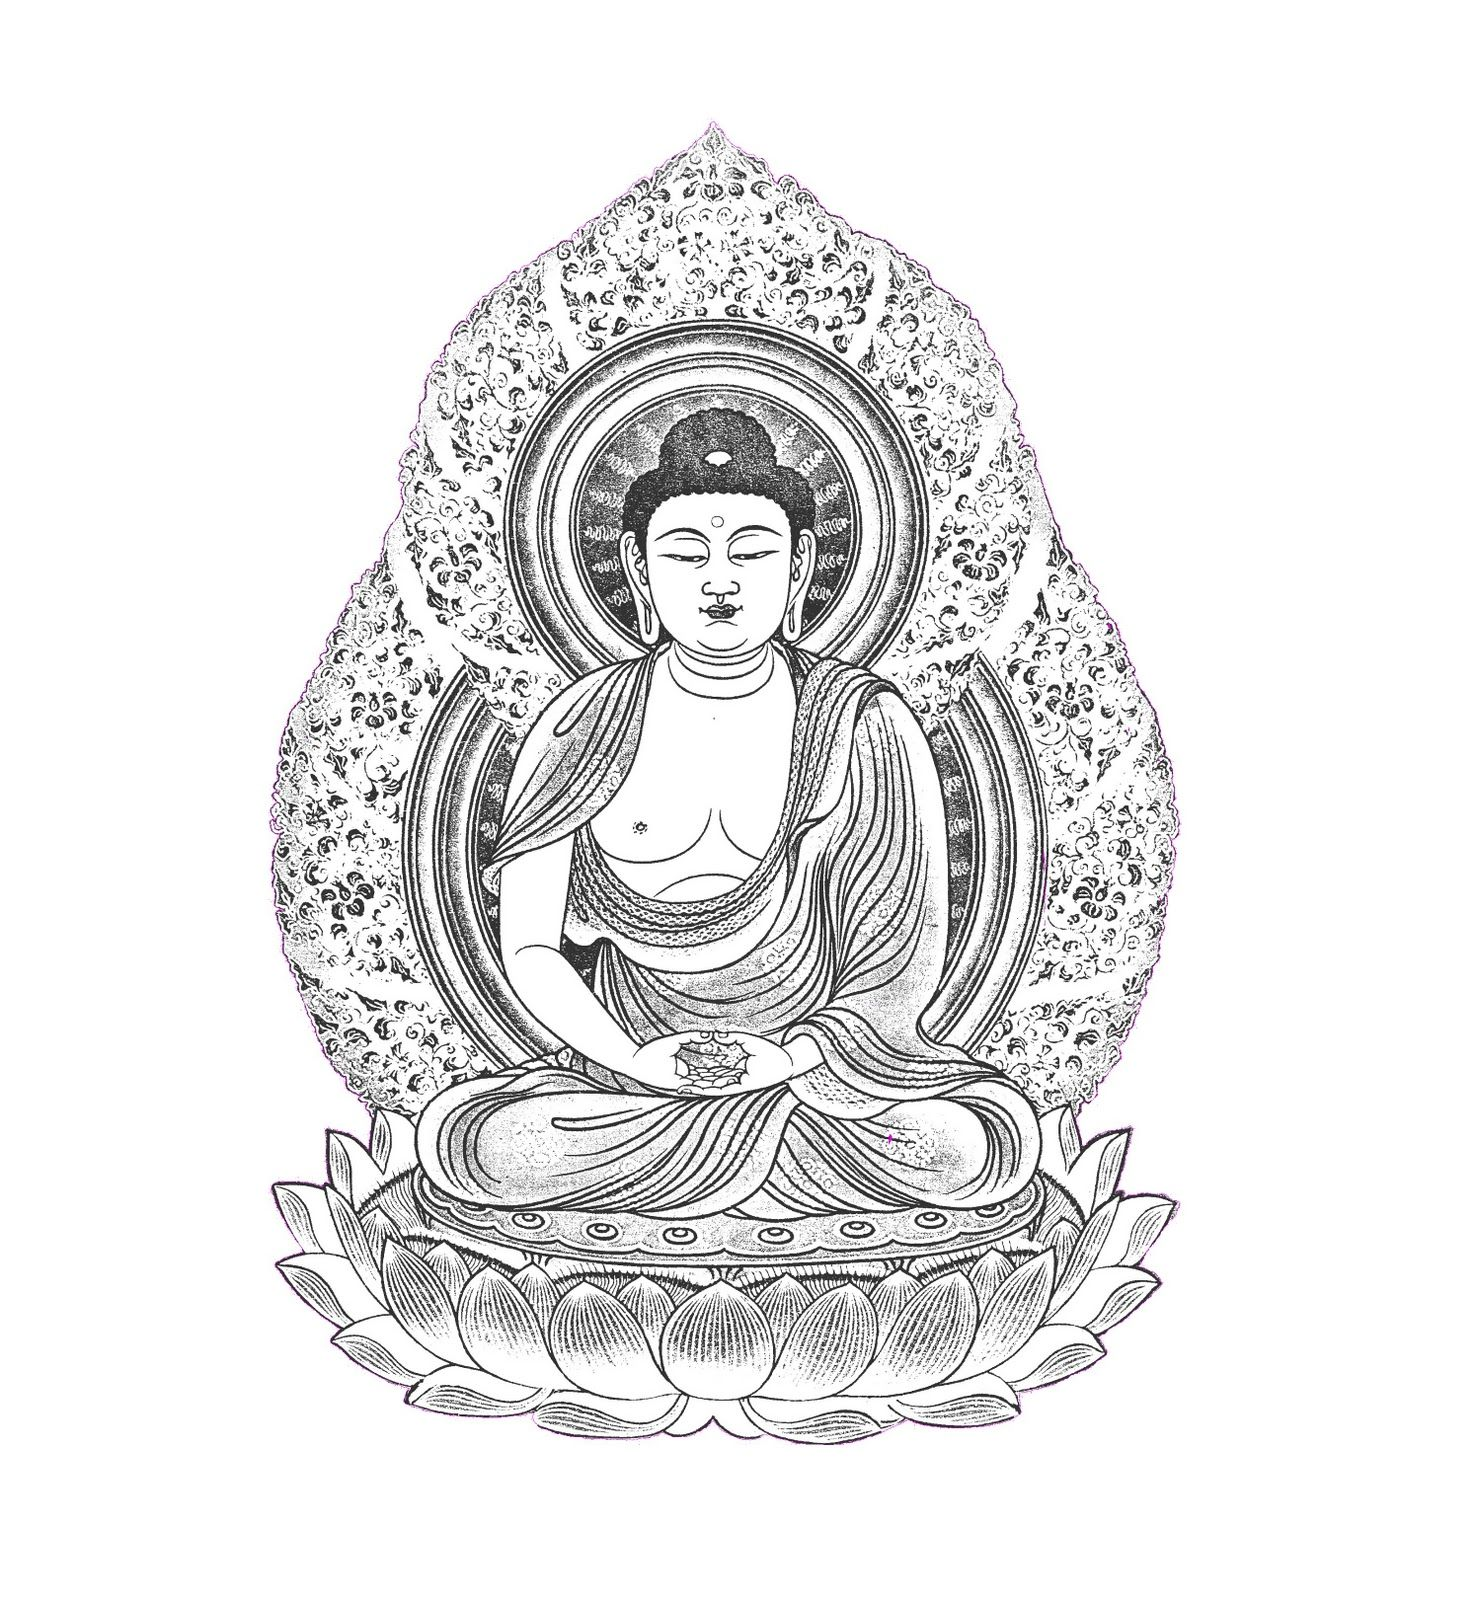 buddhism coloring pages Free Buddha Coloring Page | Artwork | Buddha, Mandala, Buddhism buddhism coloring pages